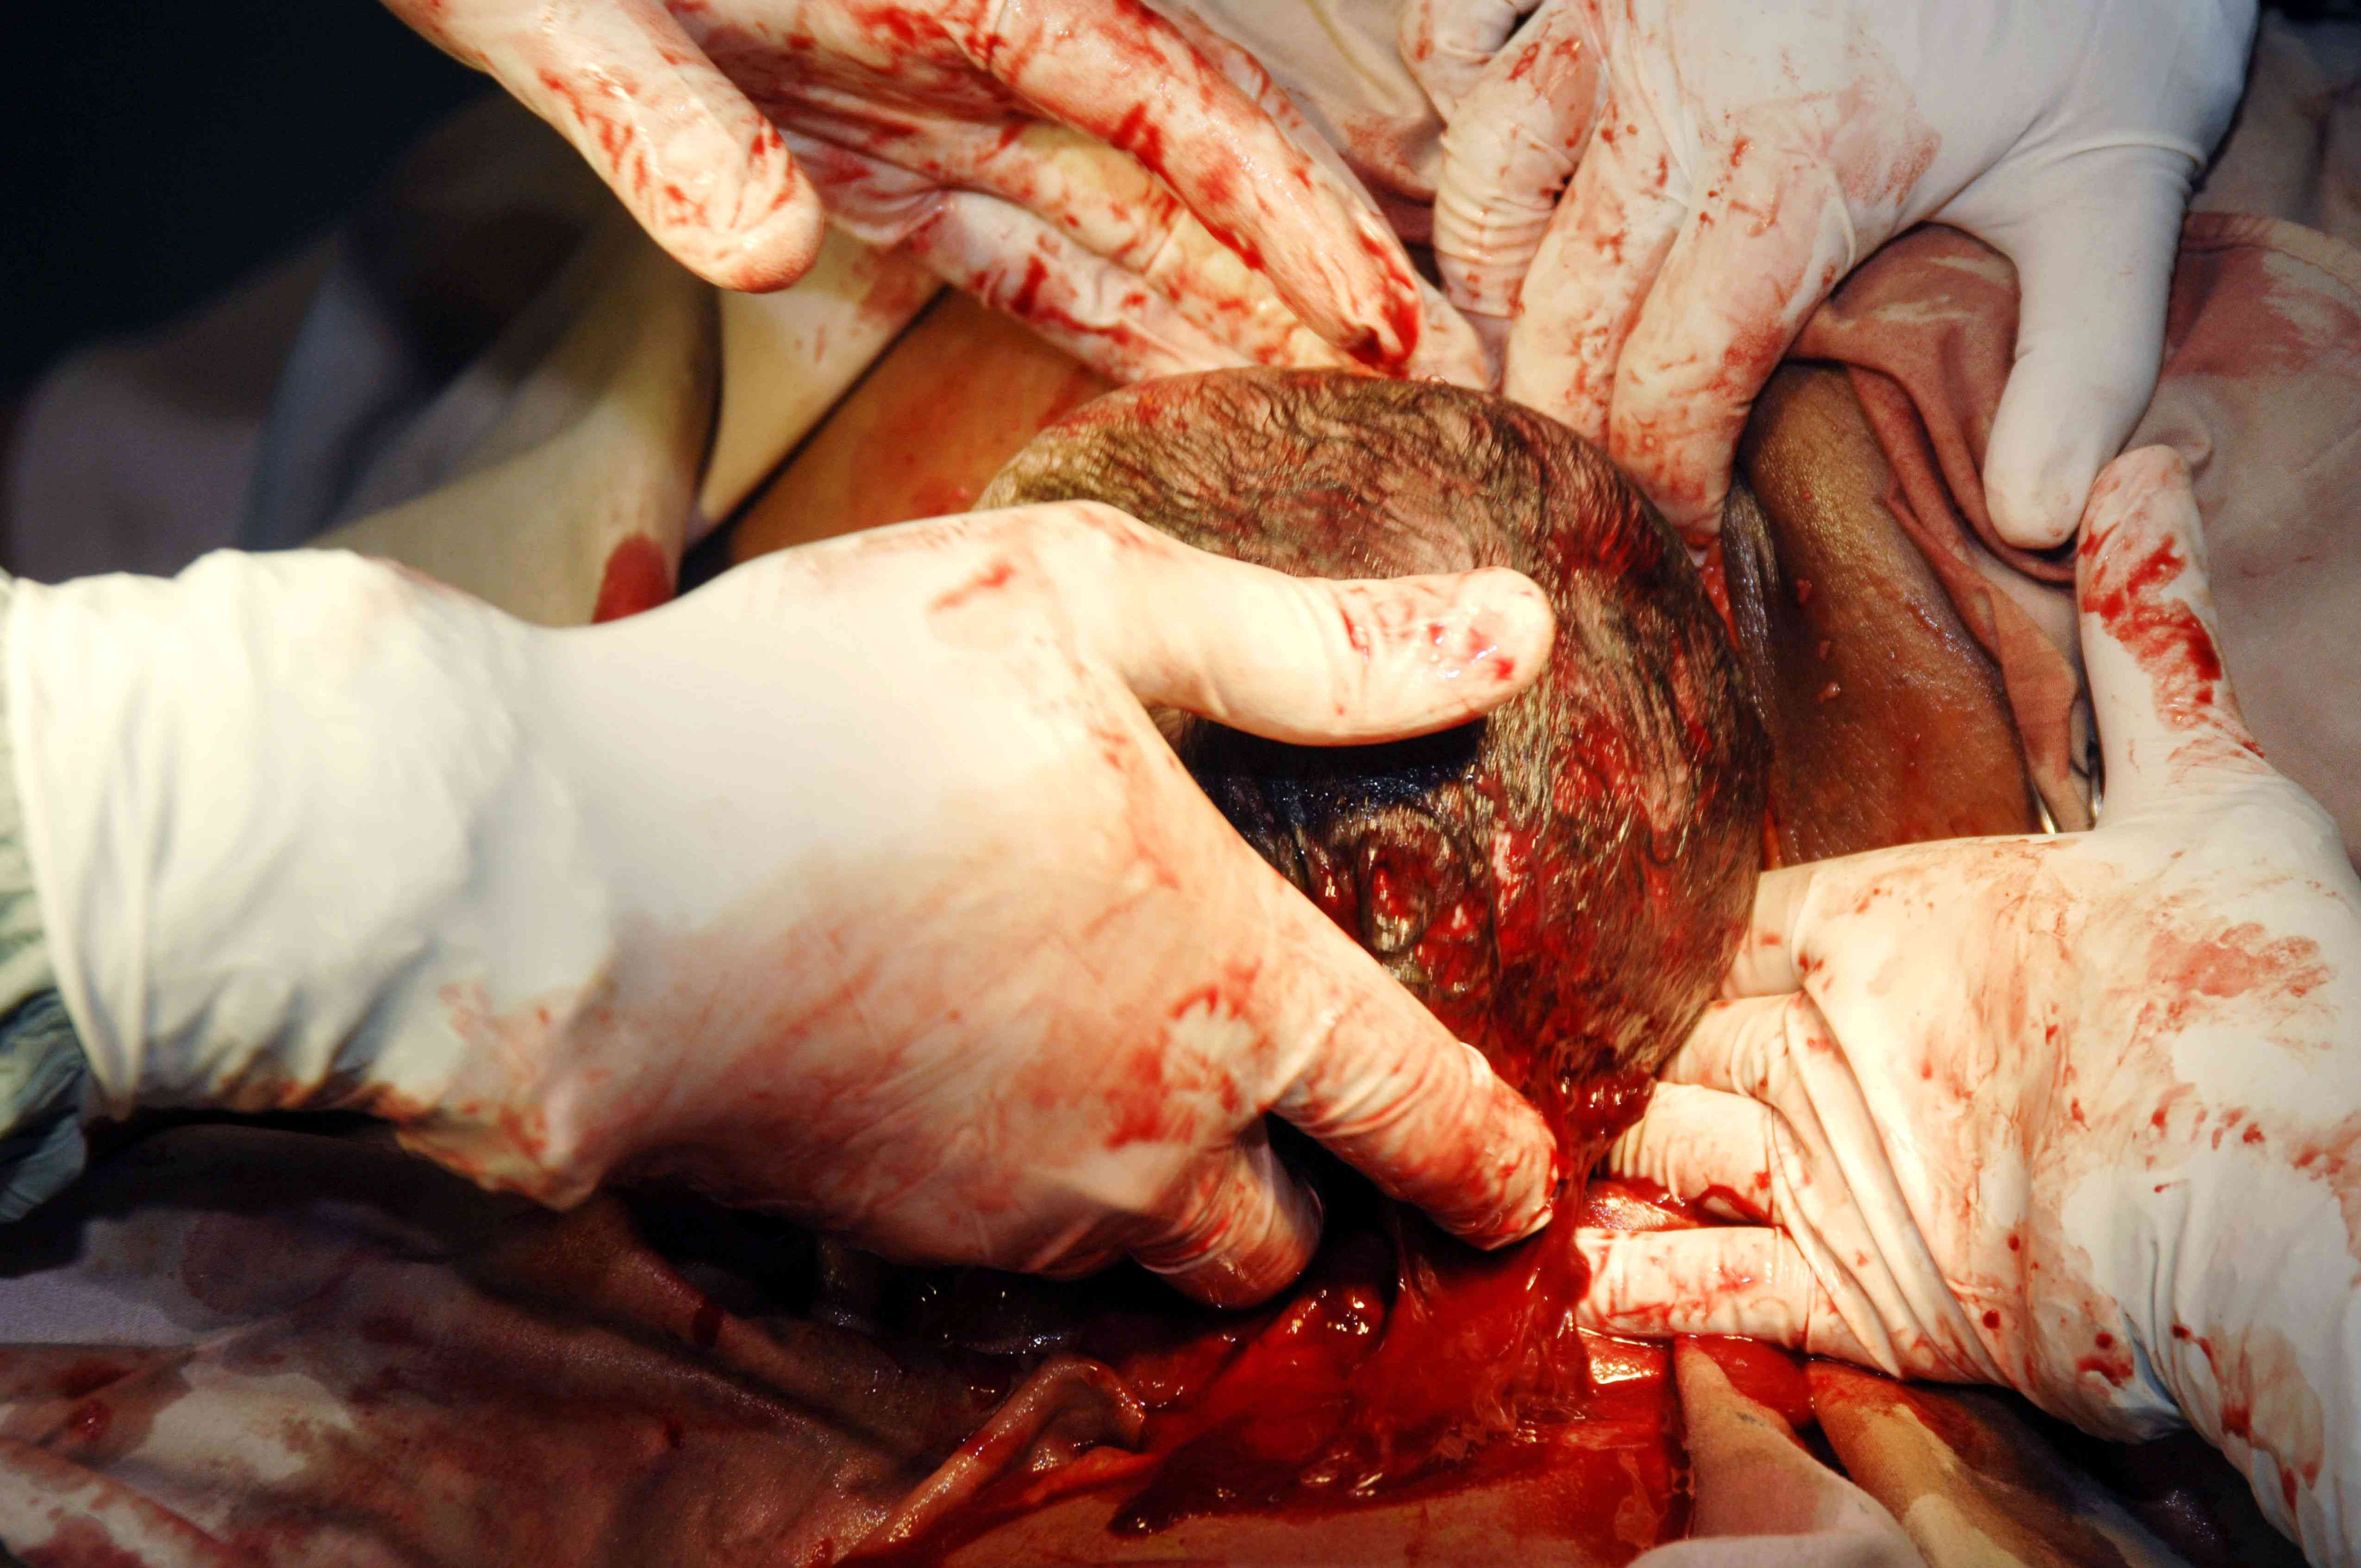 Getting the shoulders out during a cesarean section